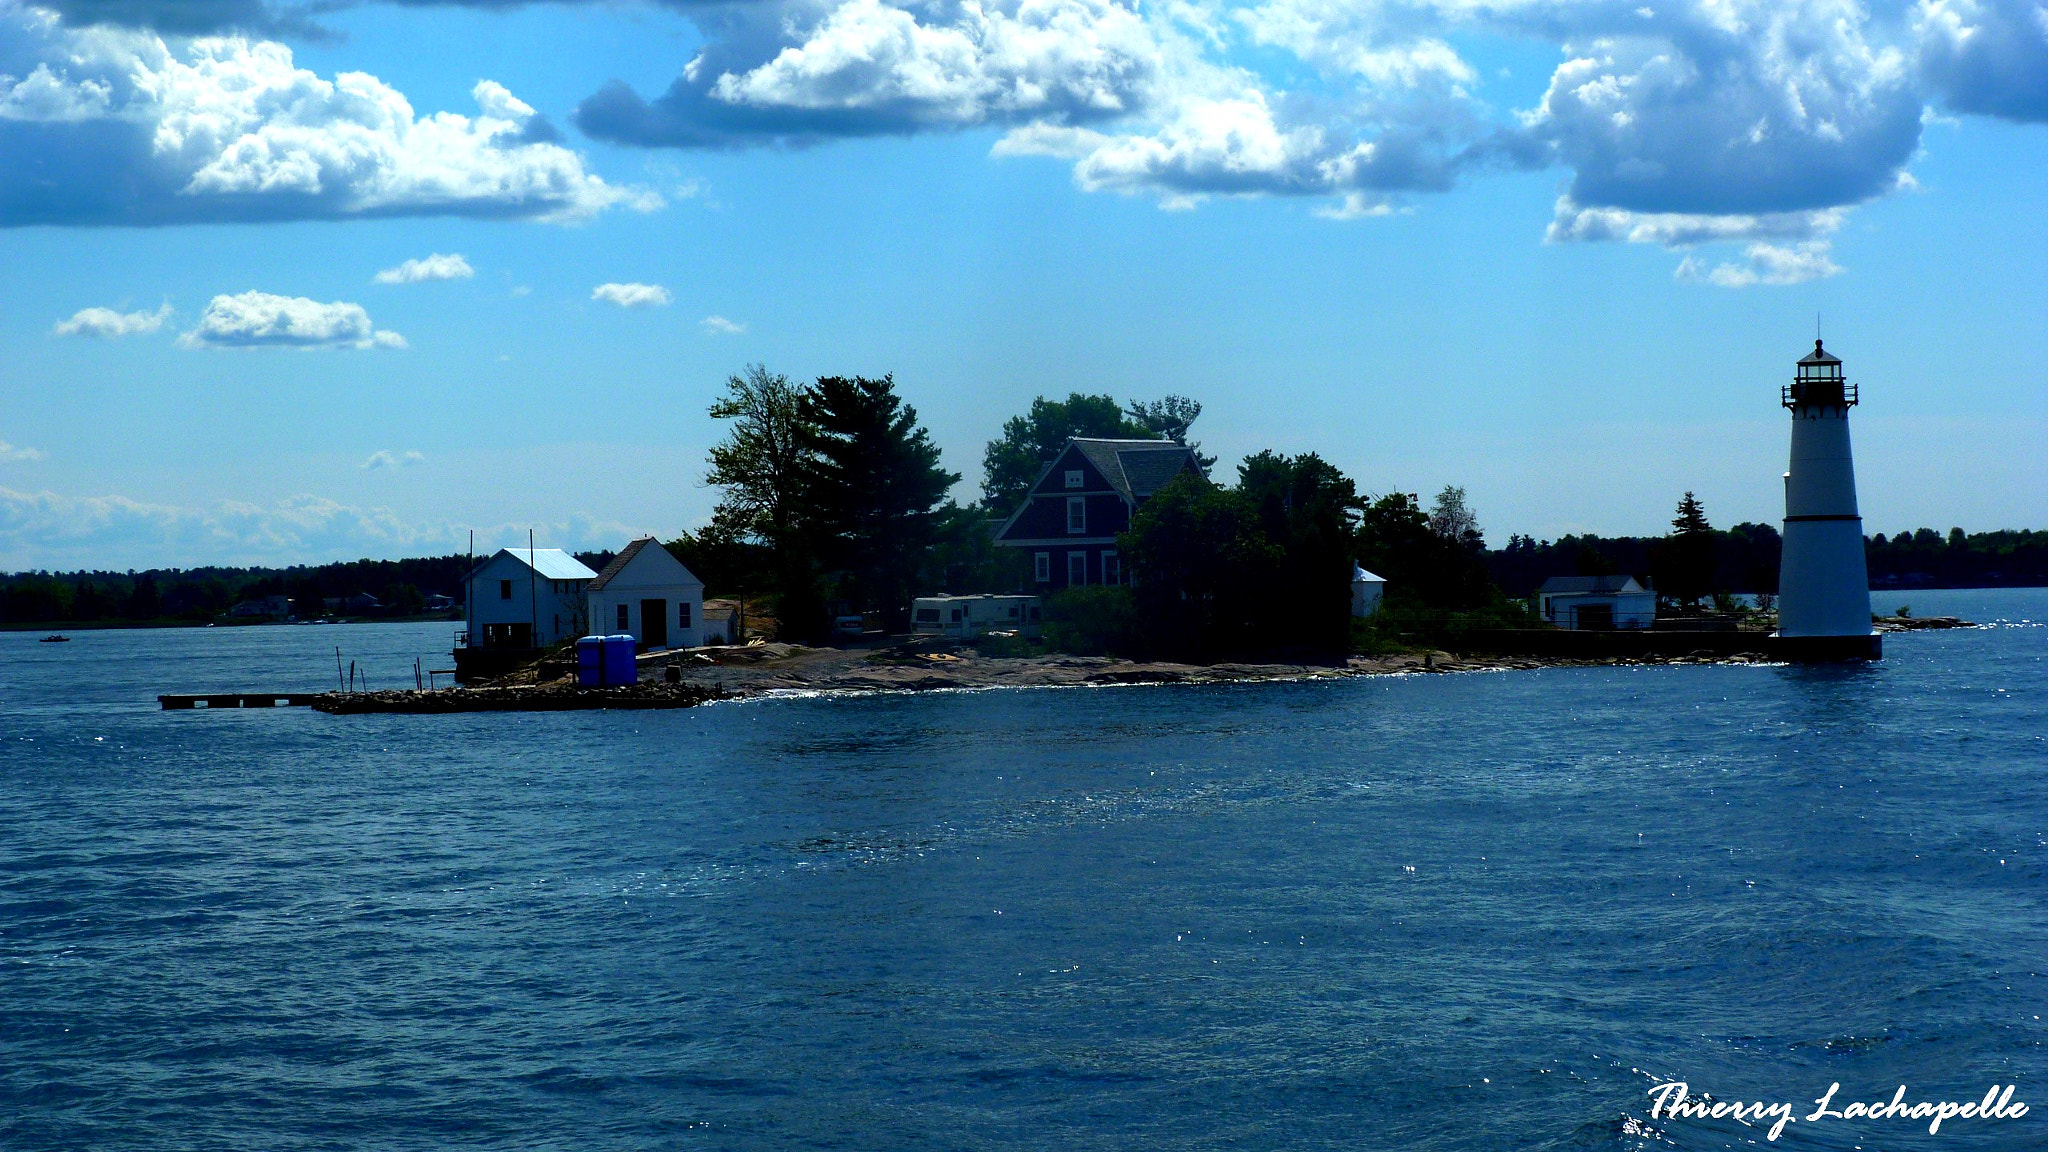 Photograph Thousand Islands,Ontario by Thierry Lachapelle on 500px